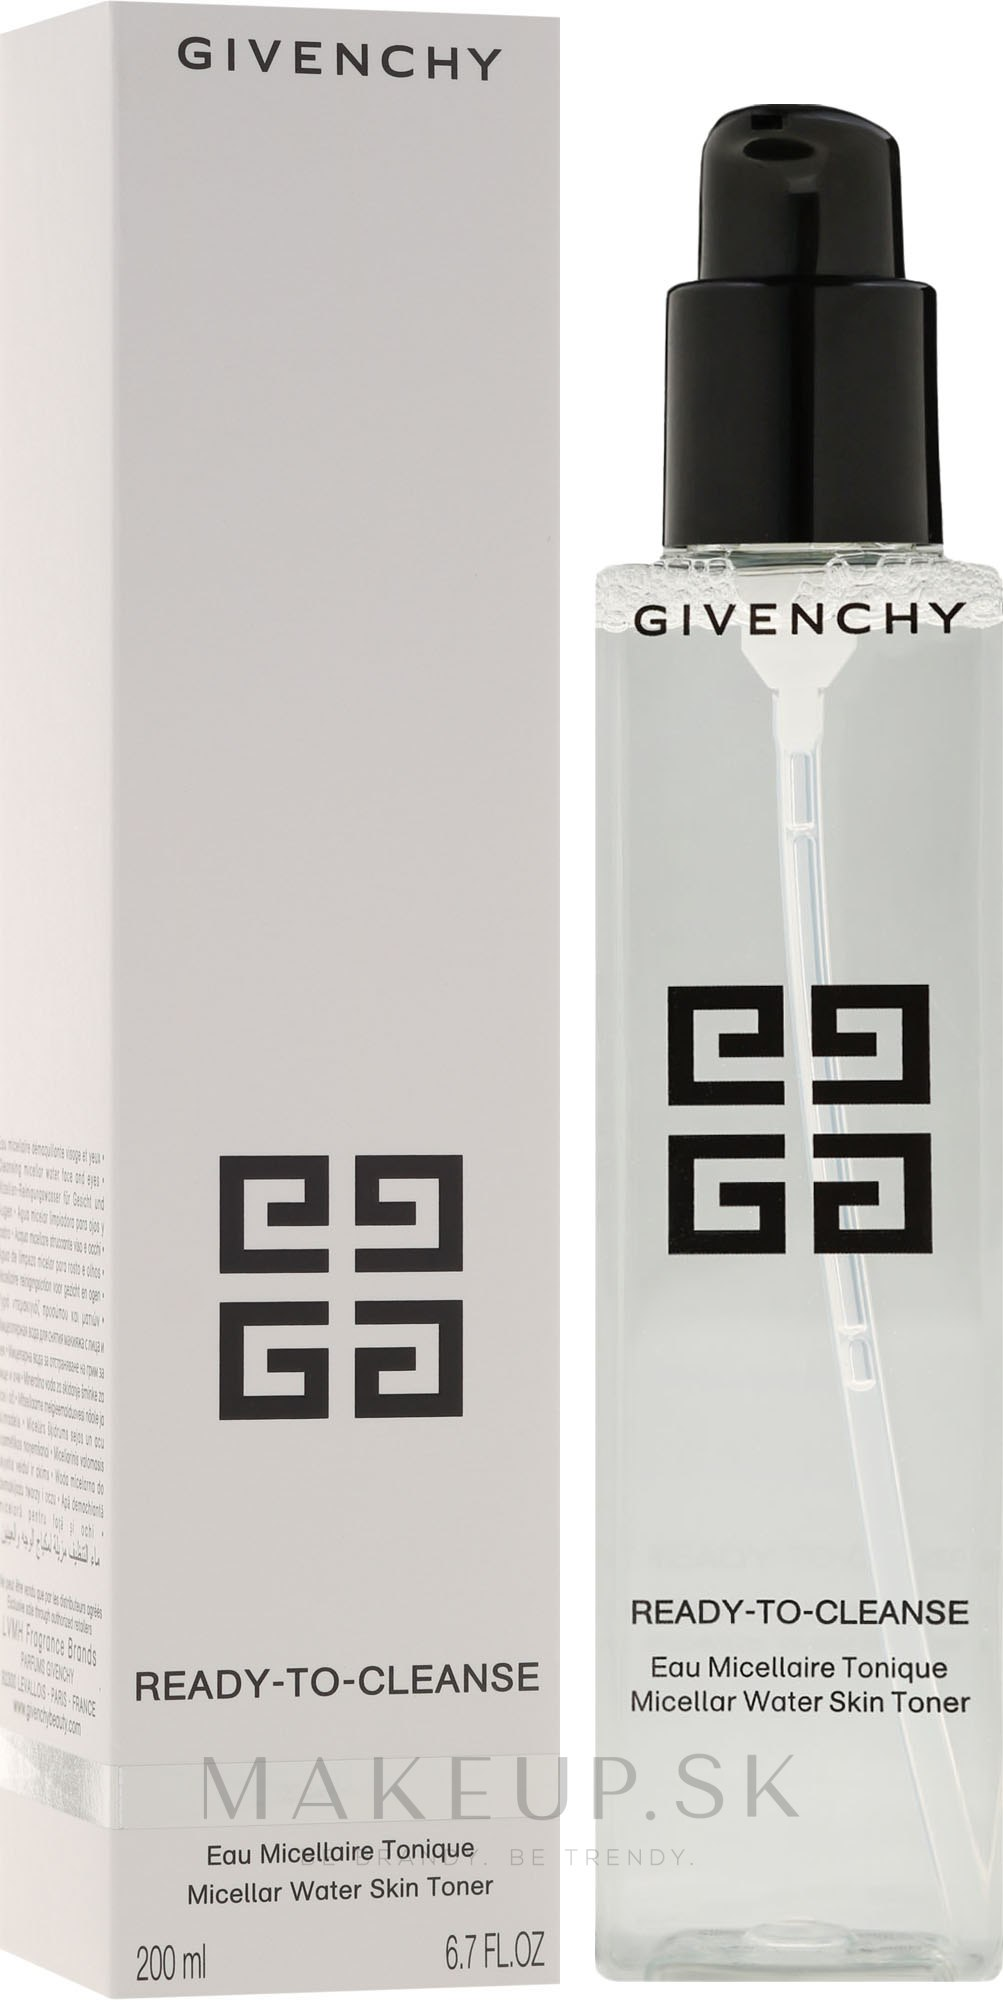 Micelárne tonikum - Givenchy Ready-To-Cleanse Micellar Water Skin Toner — Obrázky 200 ml